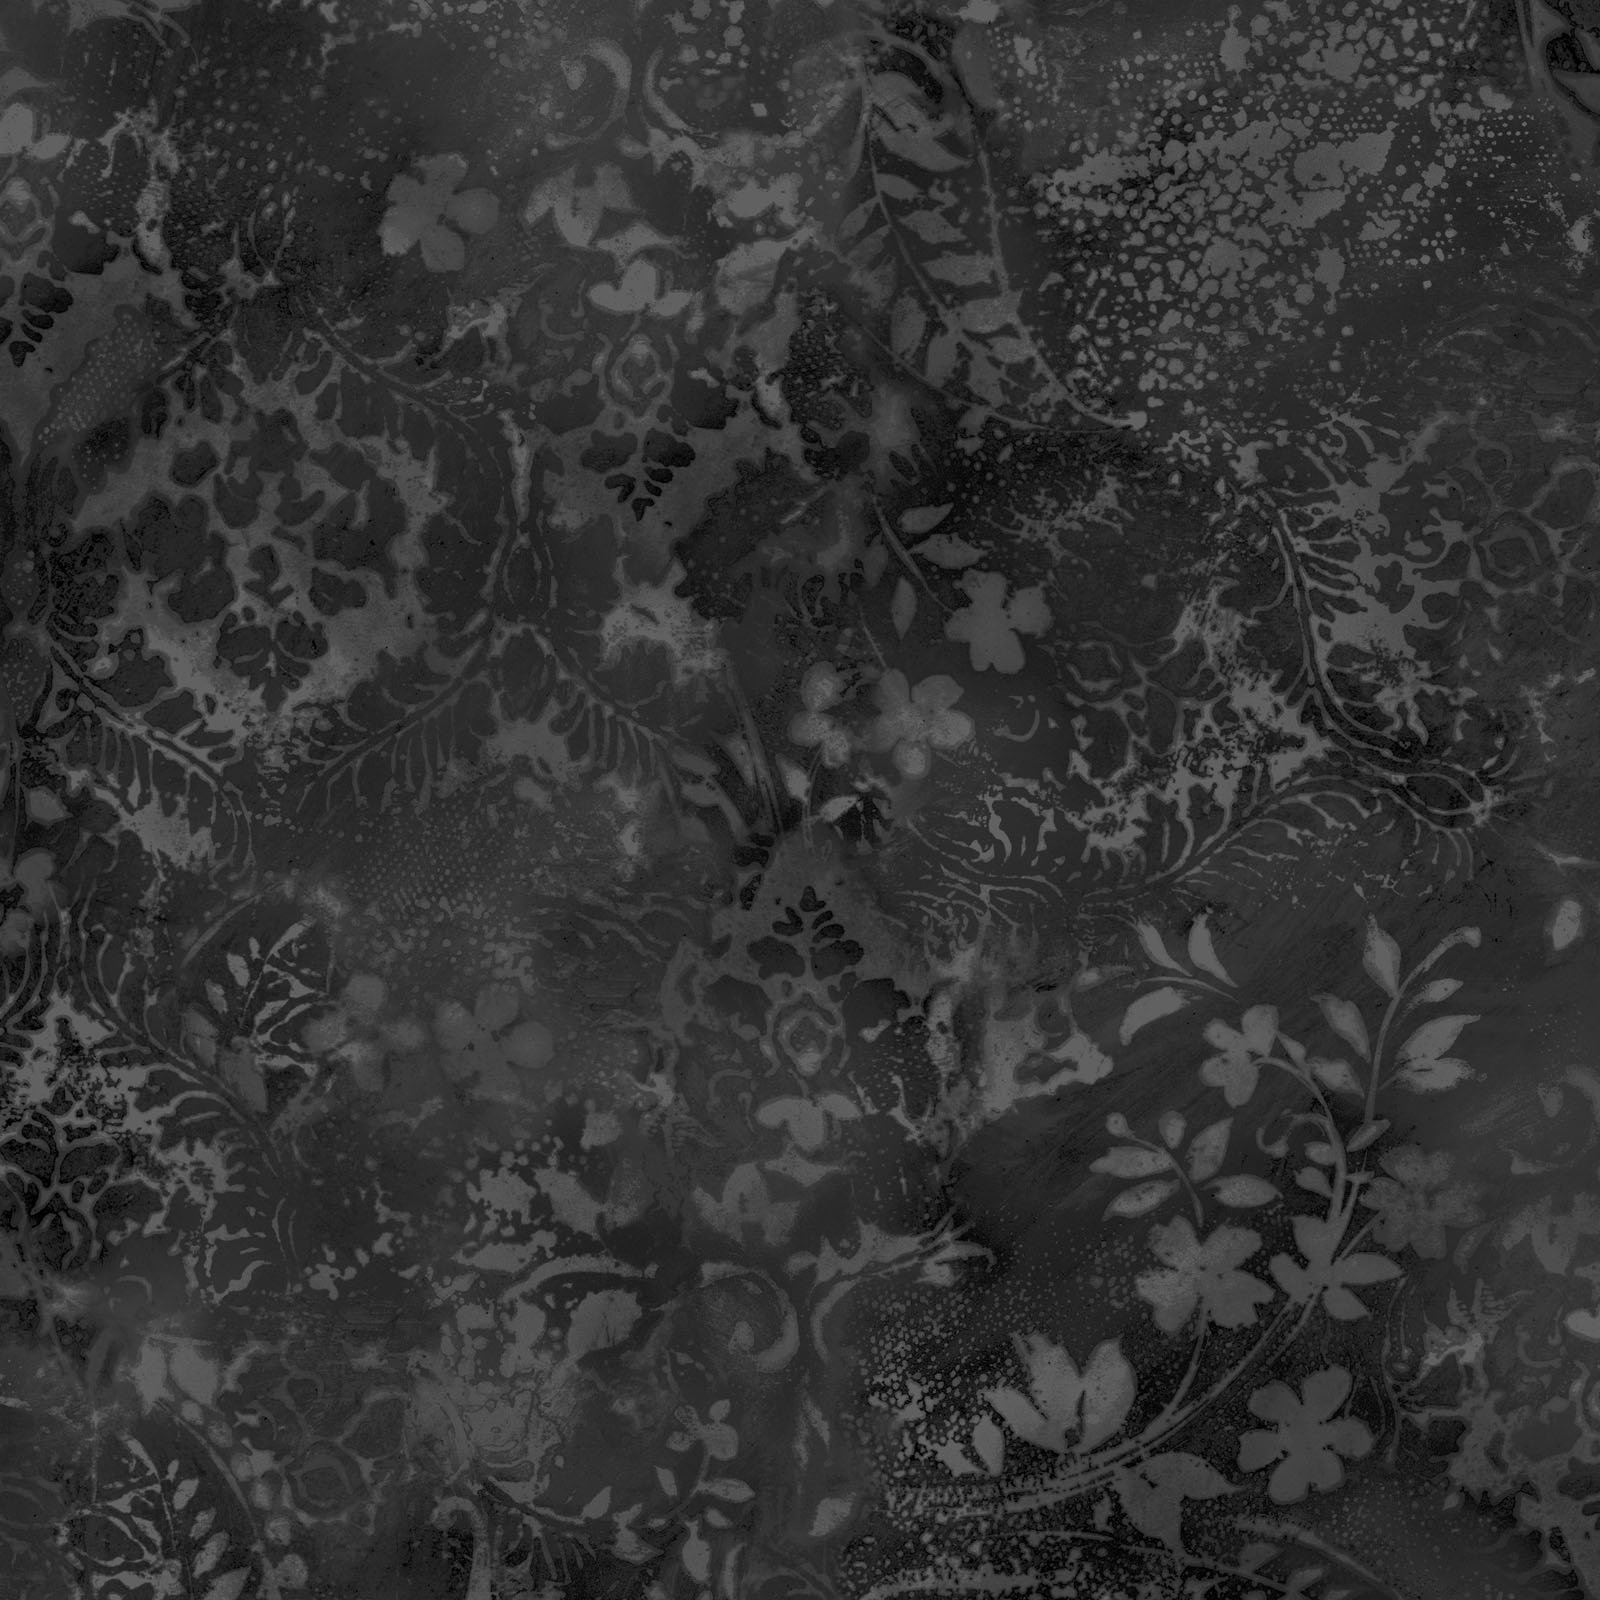 EESC-QBD105 J - BEAUTIFUL BACKING 108 VINTAGE DAMASK BY MAYWOOD BLACK/ GREY - ARRIVING IN MAY 2021